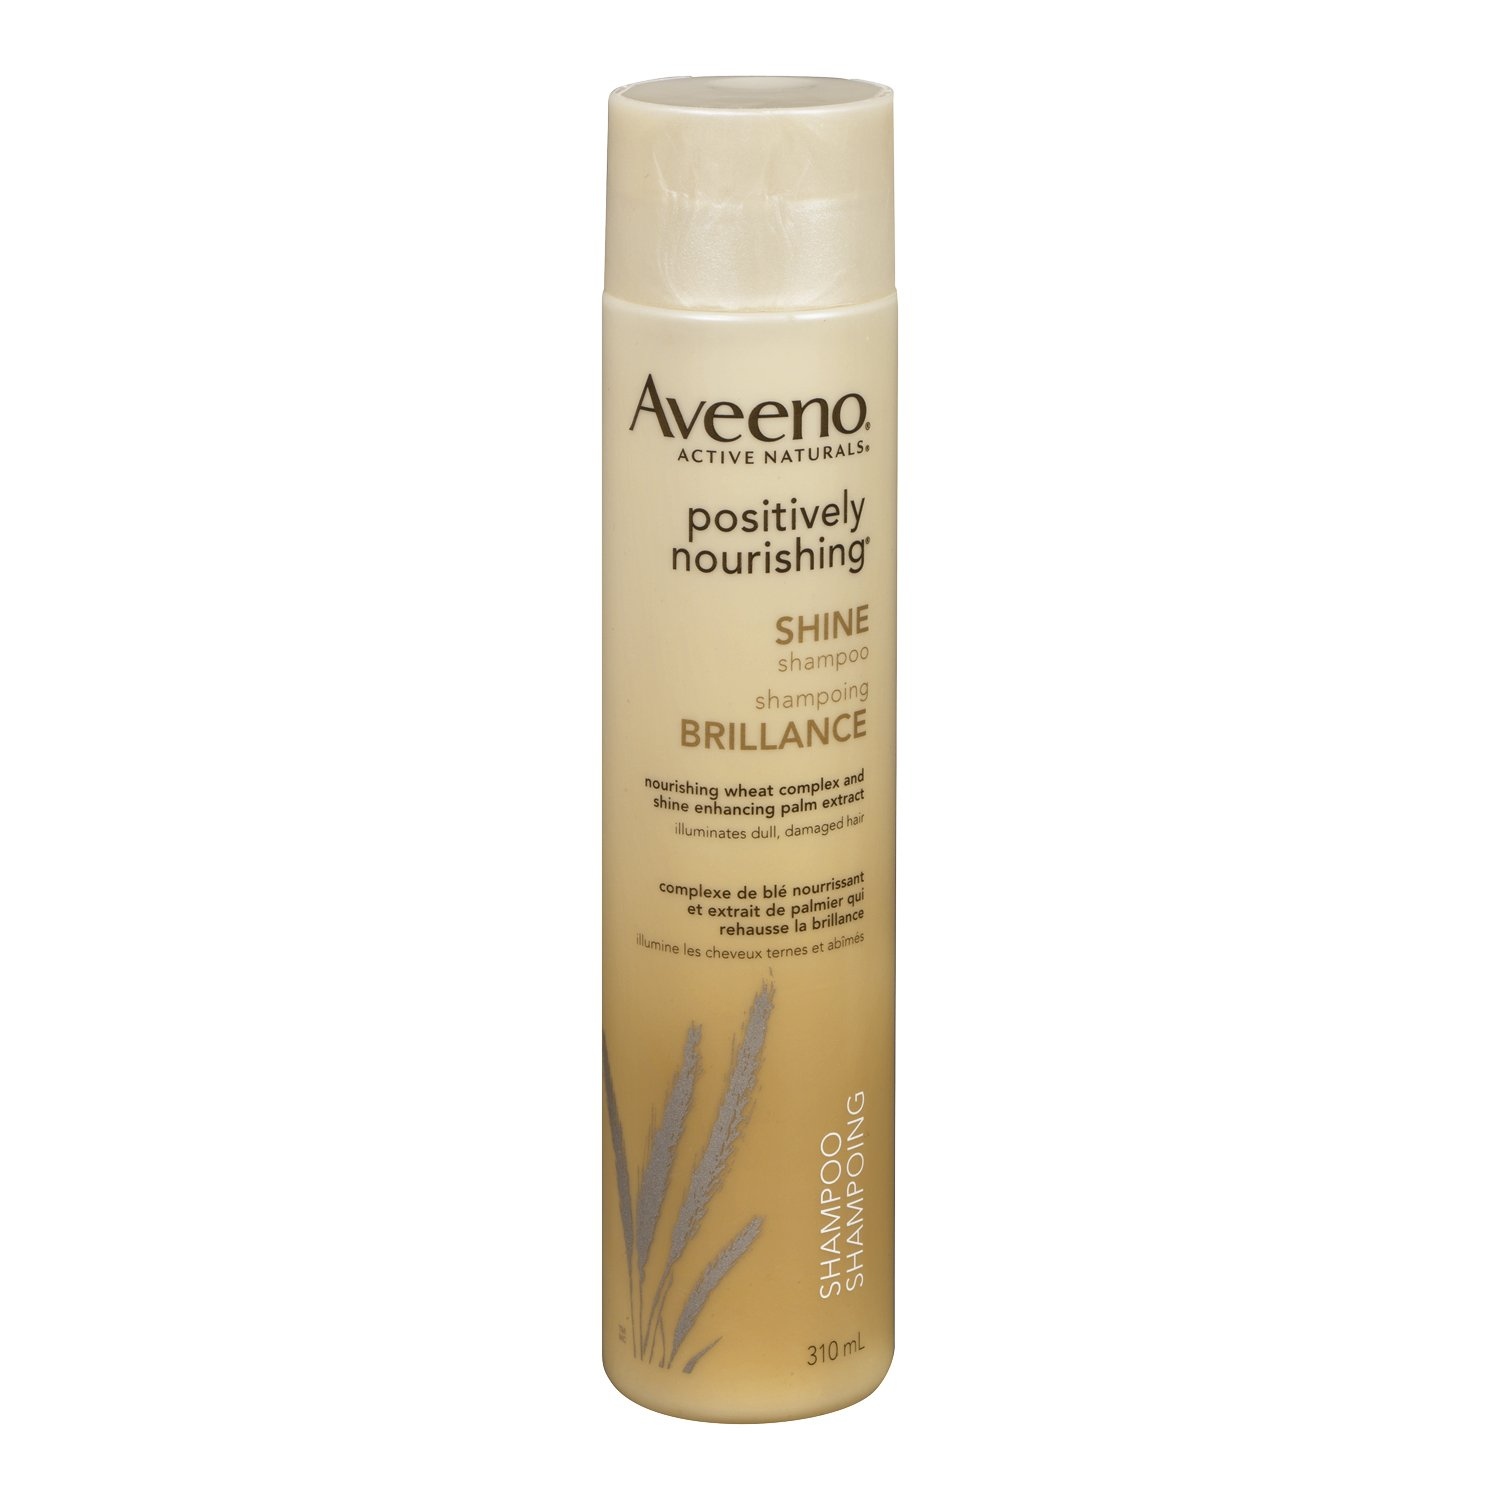 Aveeno Positively Nourishing Shine Shampoo, 310ml Aveeno Hair